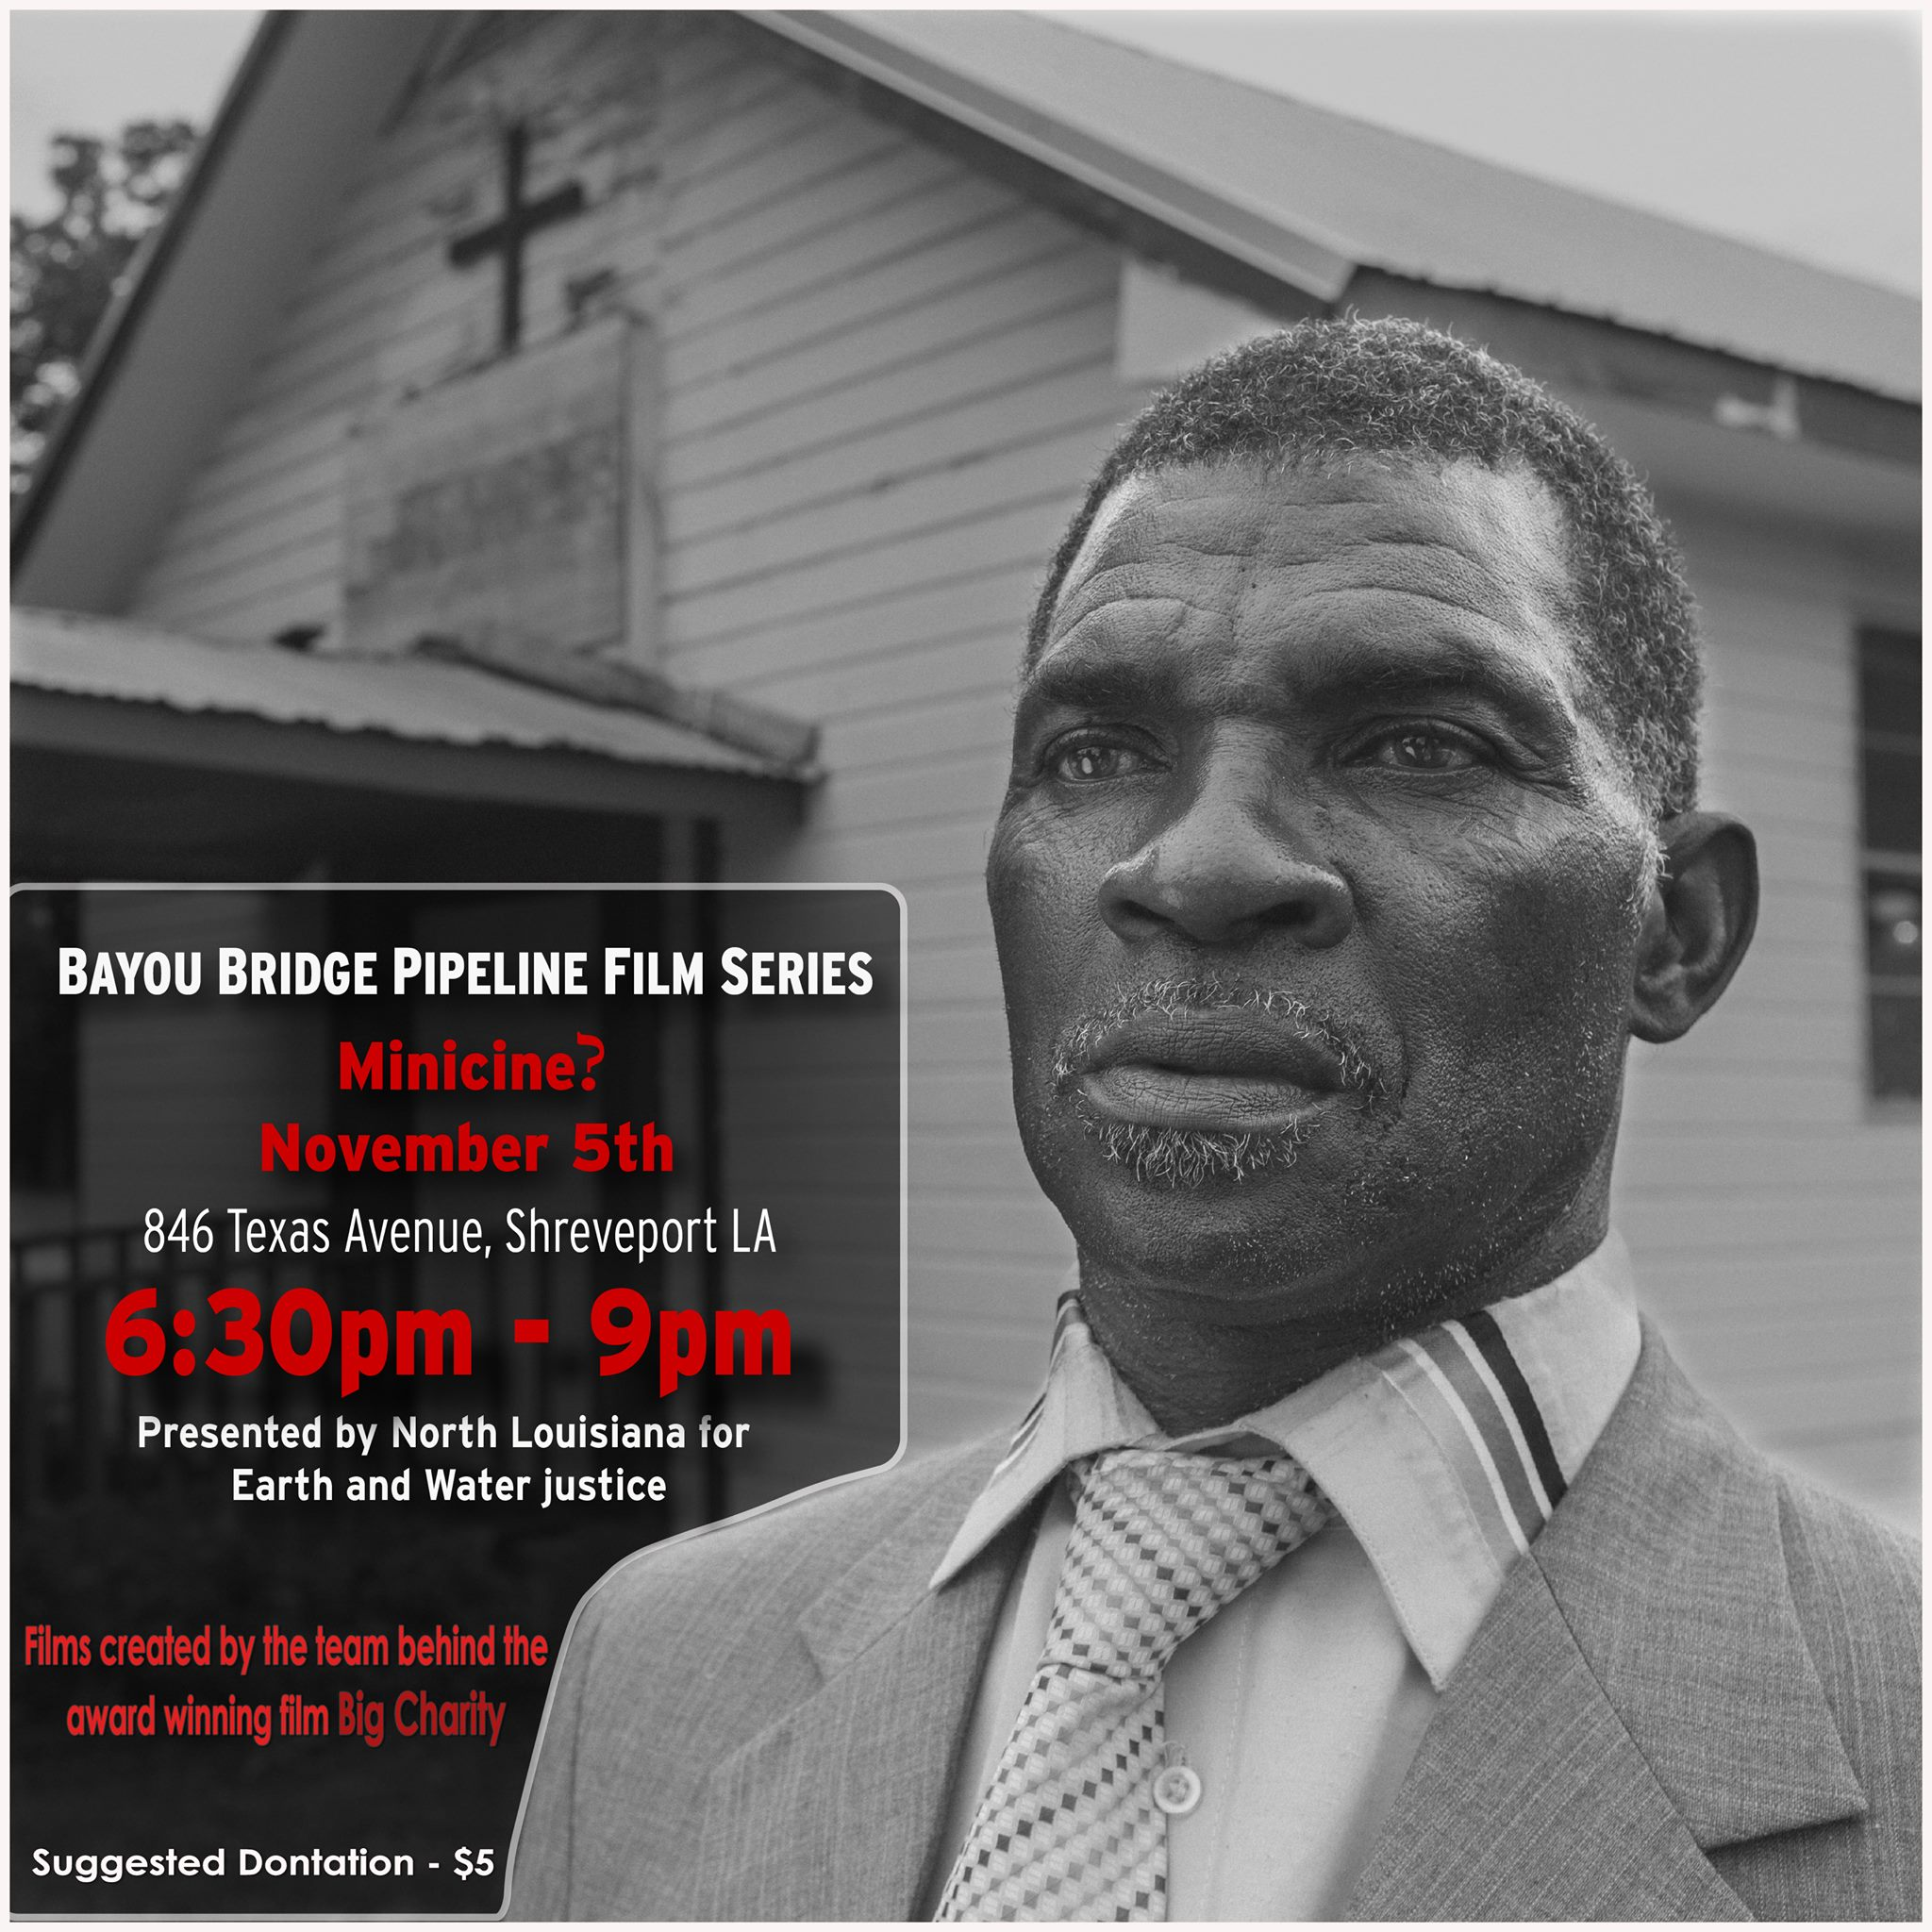 Flyer for Bayou Bridge Pipeline Film Series